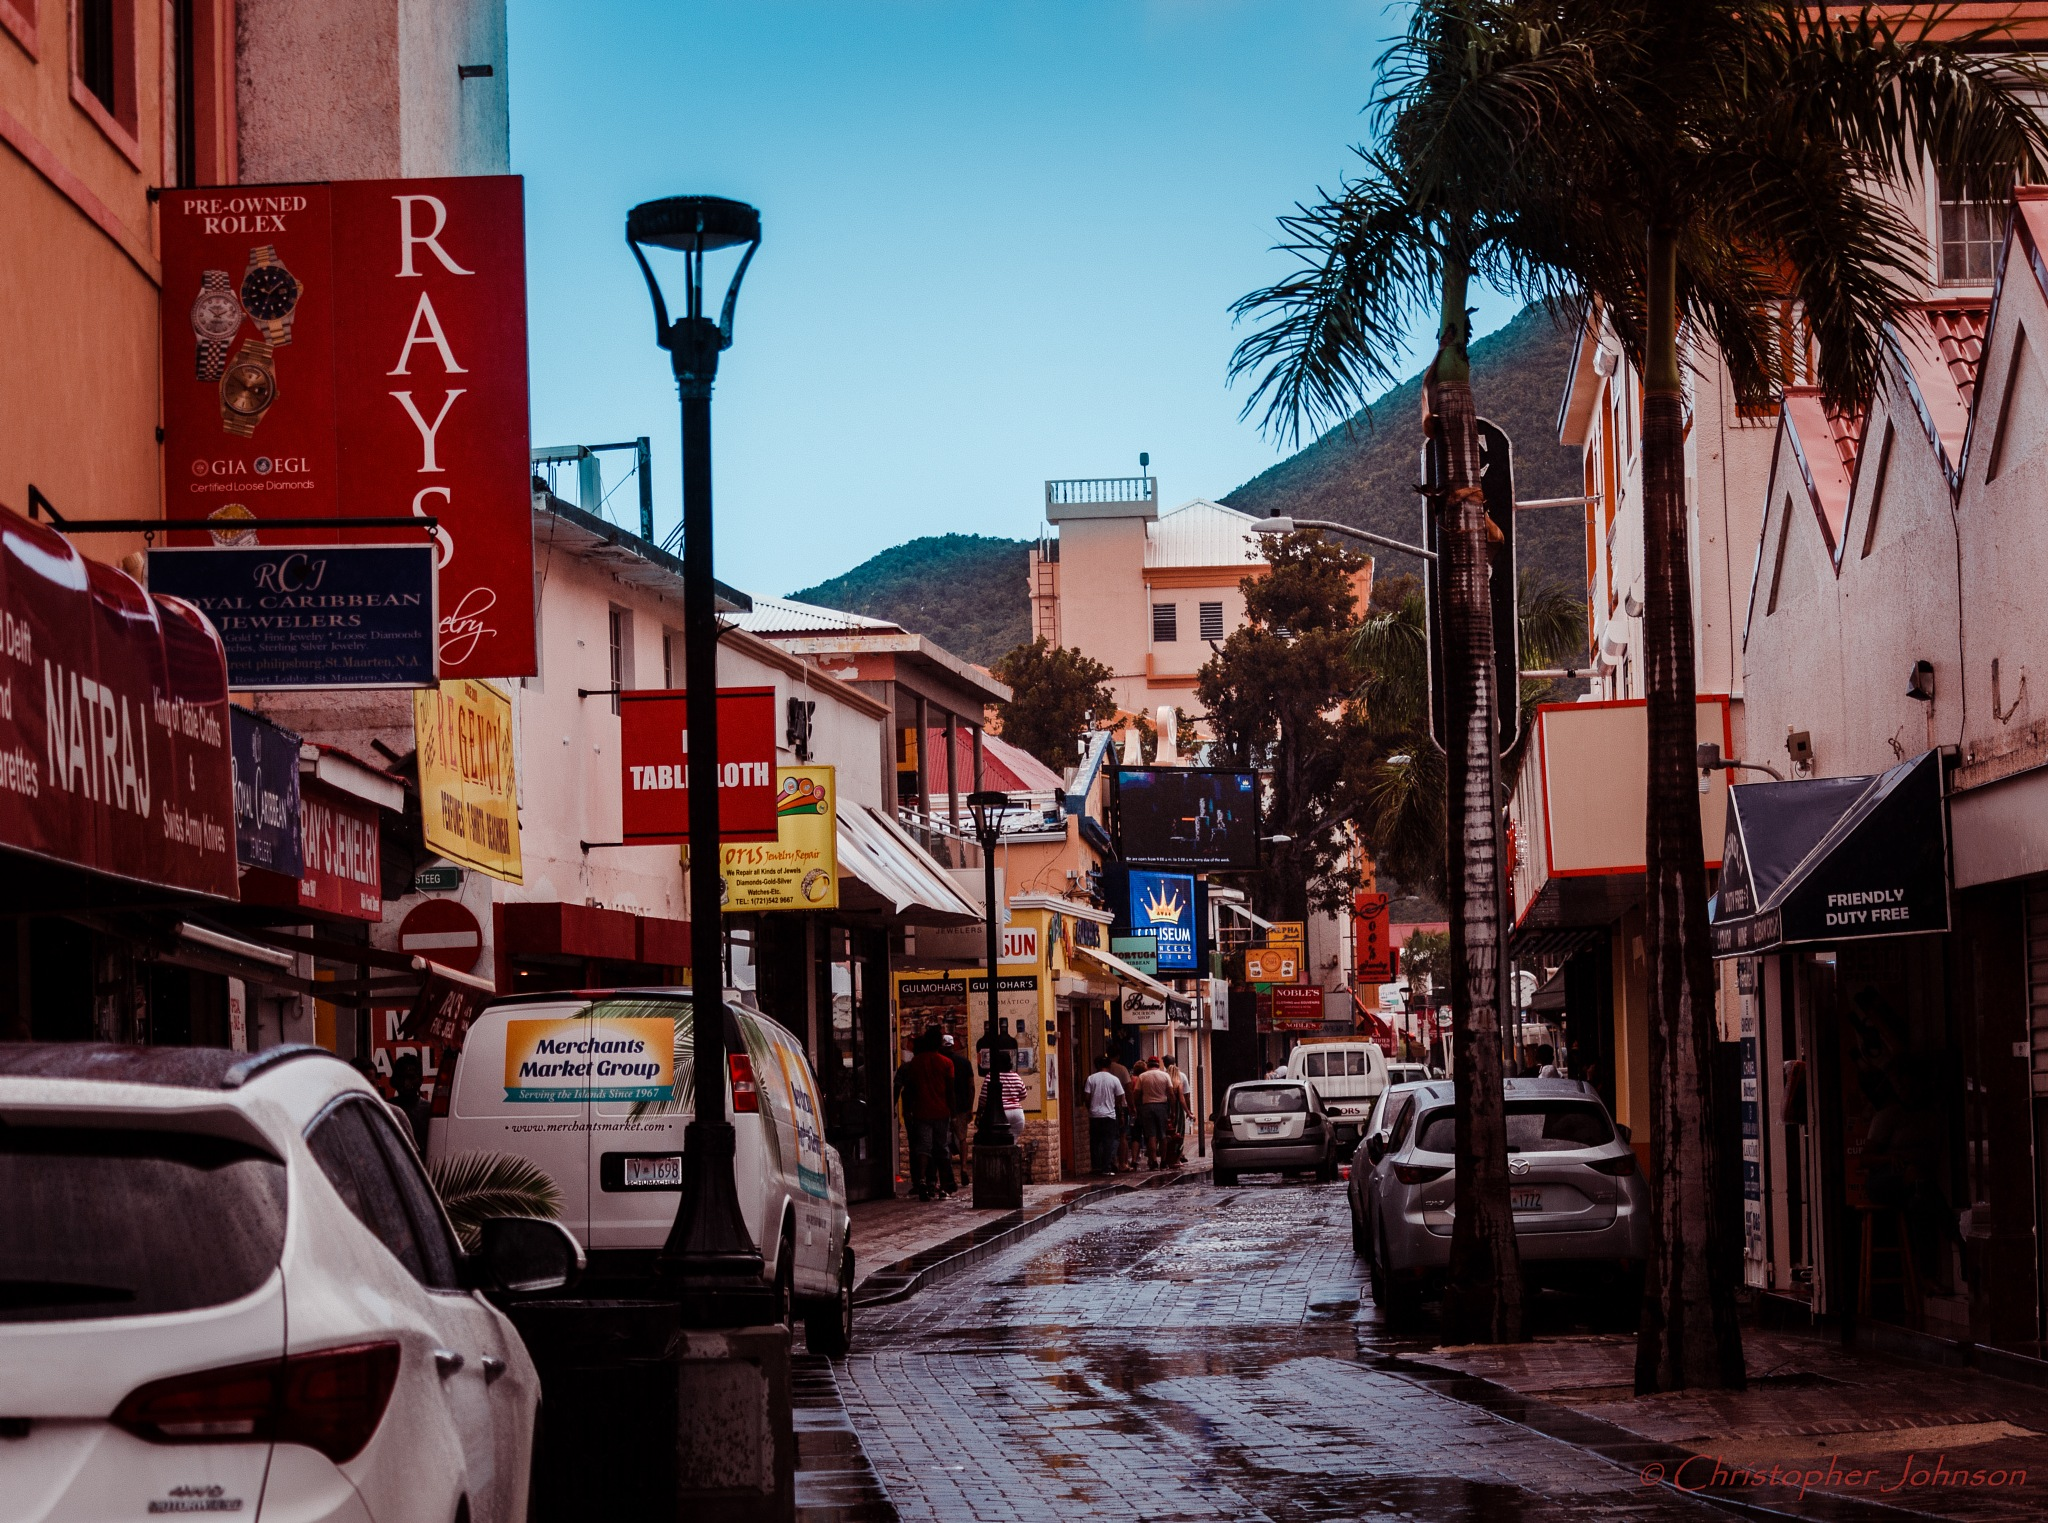 Streets of Philipsburg by Christopher S Johnson